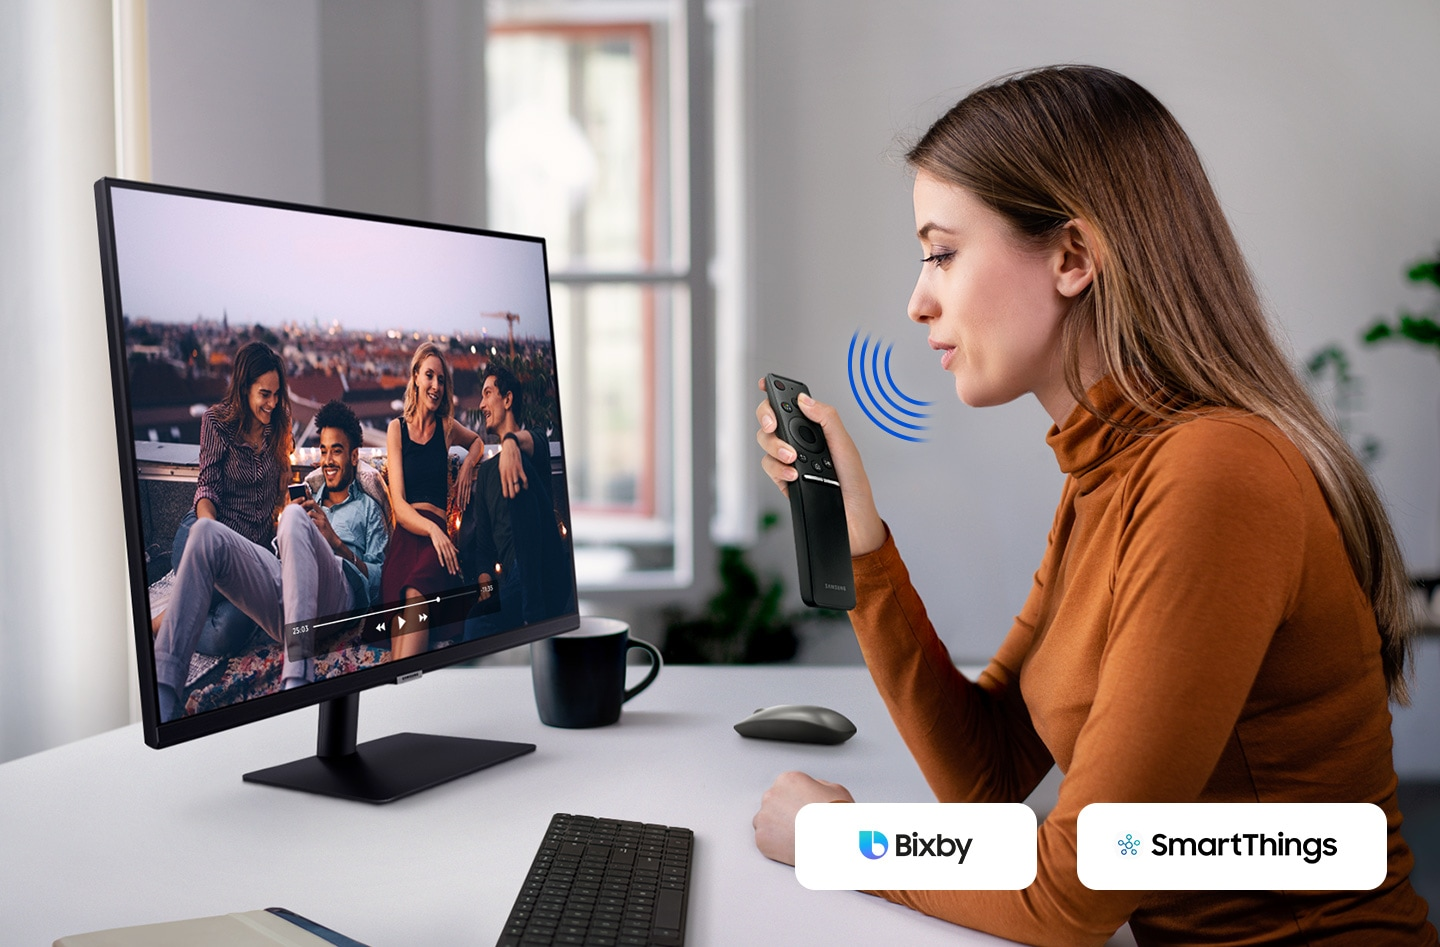 A woman speaks to the monitor. And a video is played on it. The Bixby and SmartThings icon is in the right corner.